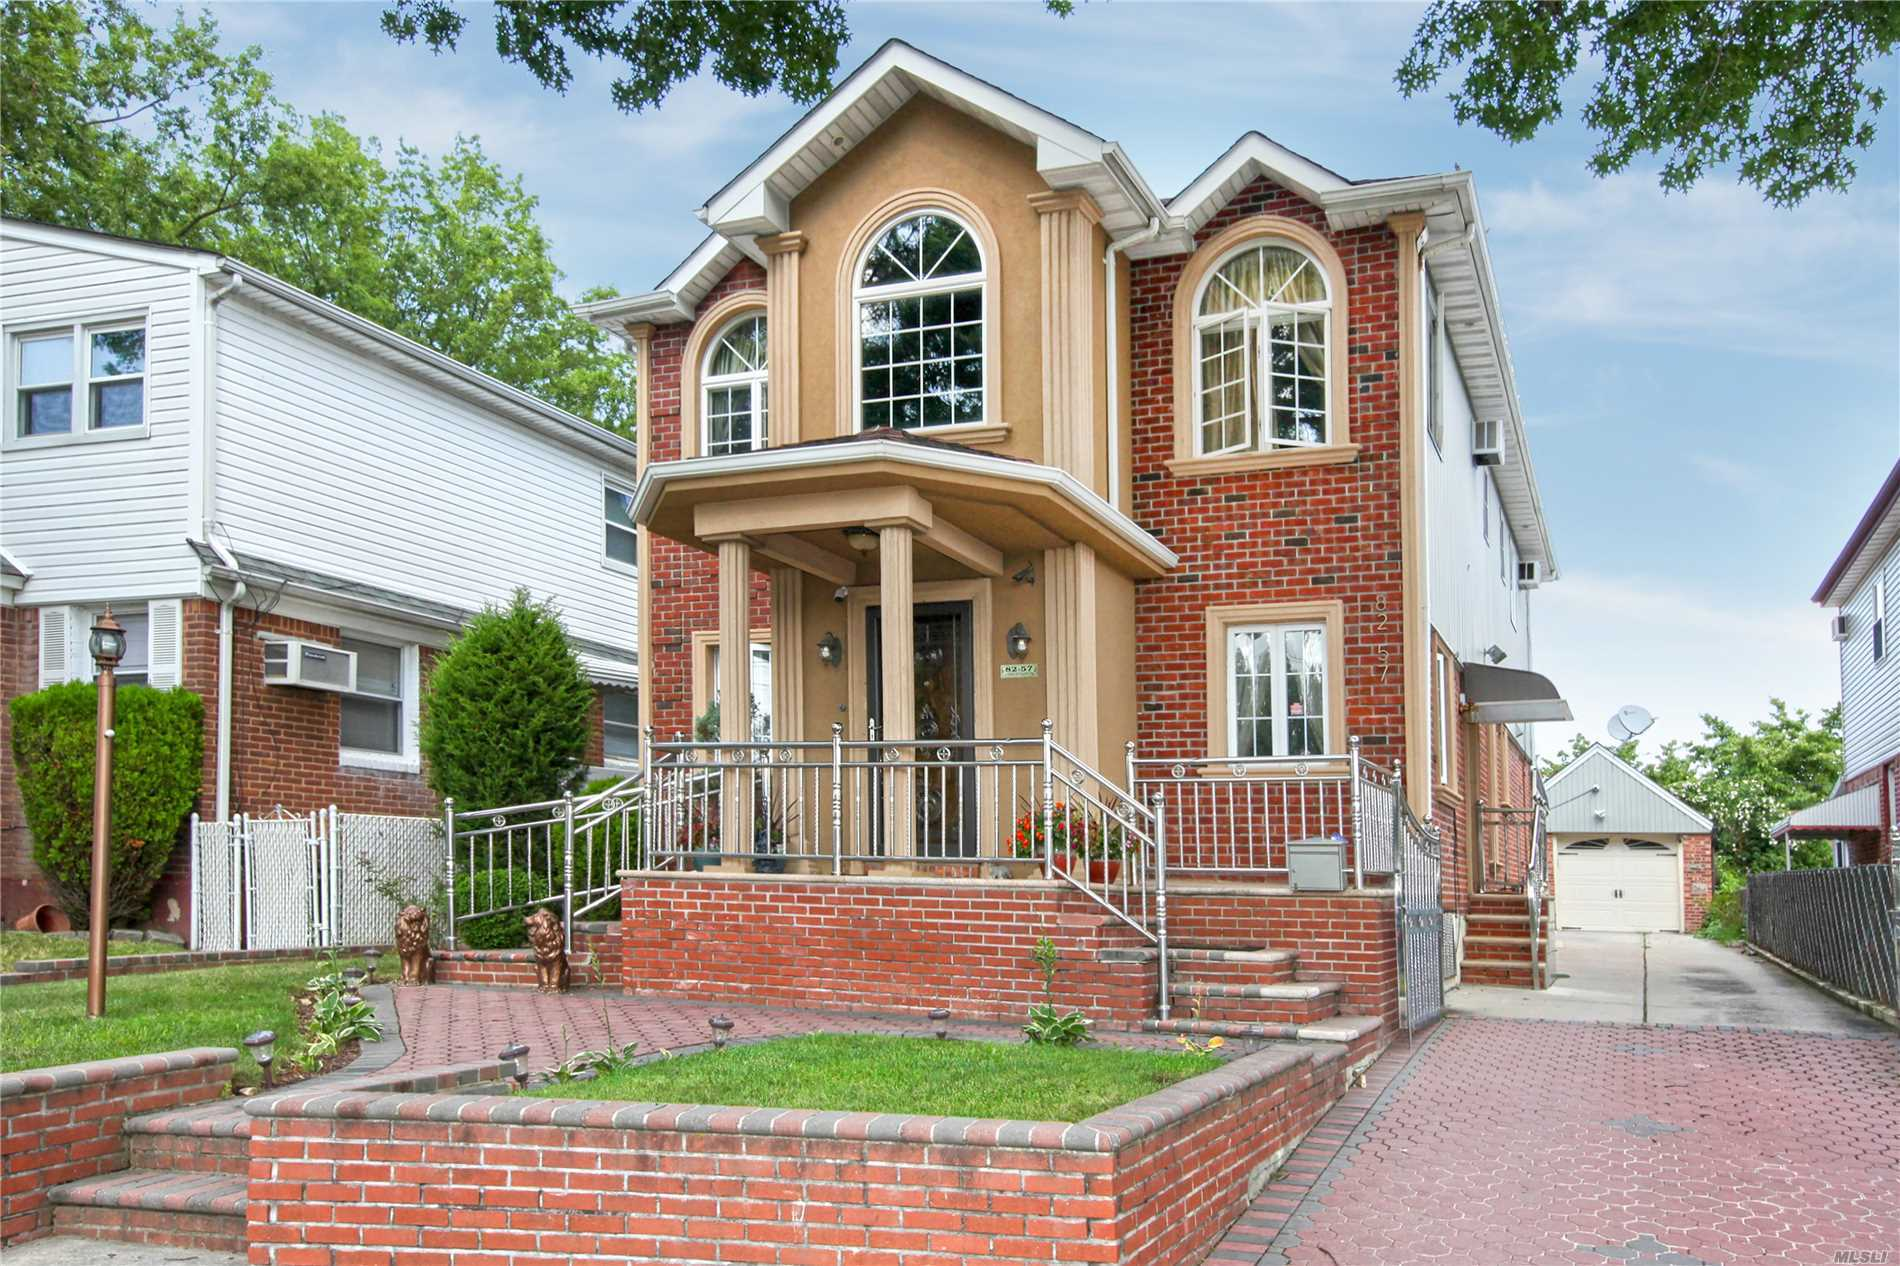 Mint Colonial 4Br, 3.5 Bath, Fully Renovated/ Dormered In 2009. New Granite Kitchen, 3 Zone Heat, Ose, Large Yard, 1.5 Garage, Gas Heat, New Electrical, New Plumbing, Security Cameras And Alarm System, Close To Public Transportation.